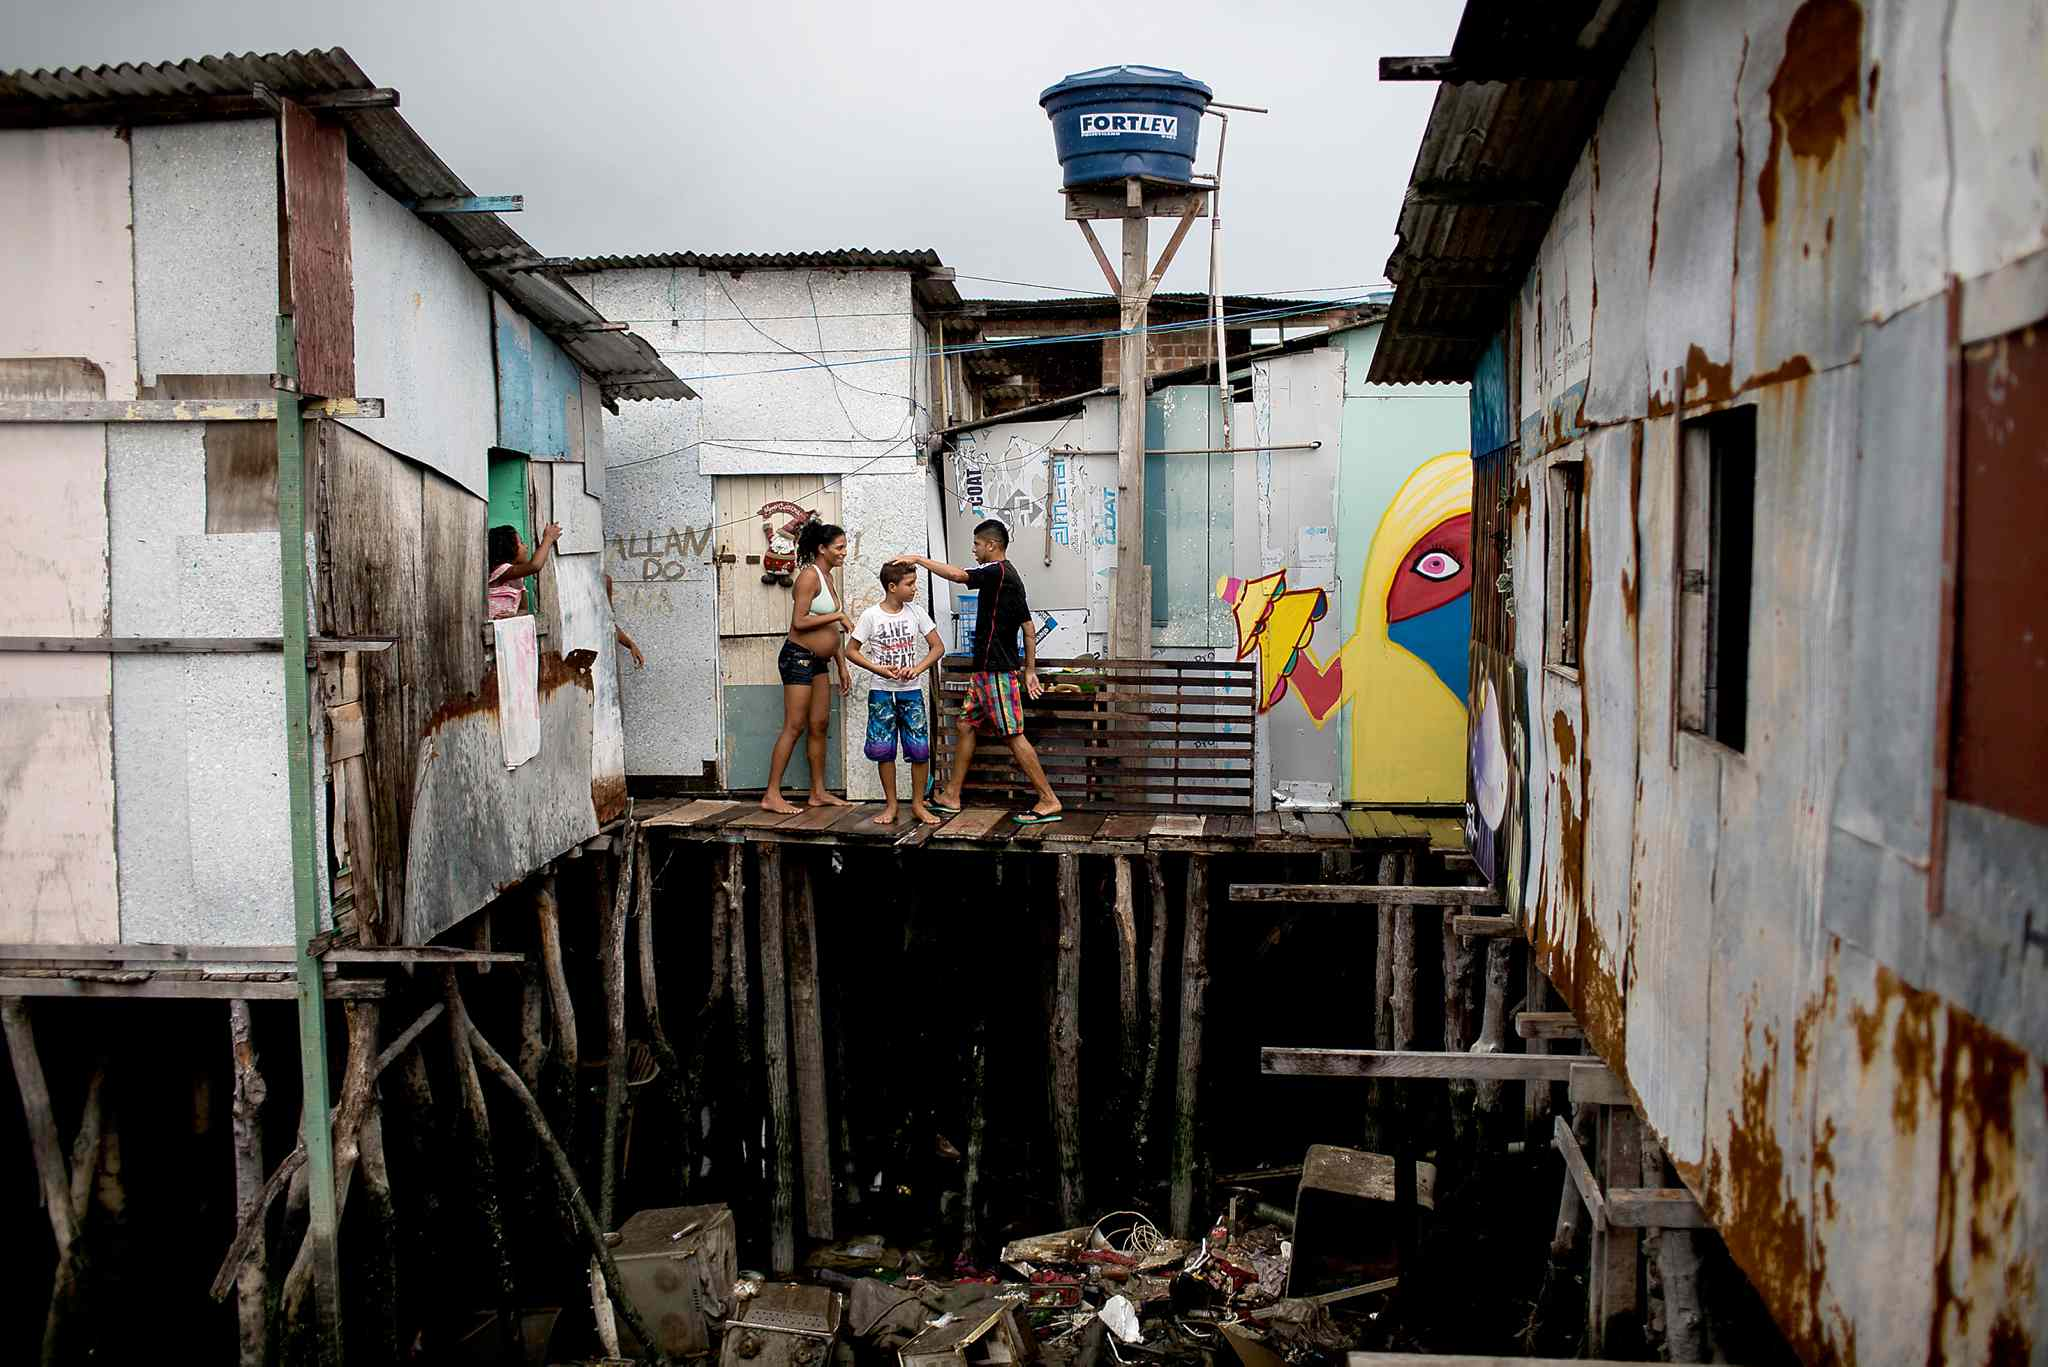 Tainara Lourenco, who's five months pregnant, at her stilt home built over polluted water in a slum in Recife, Brazil.